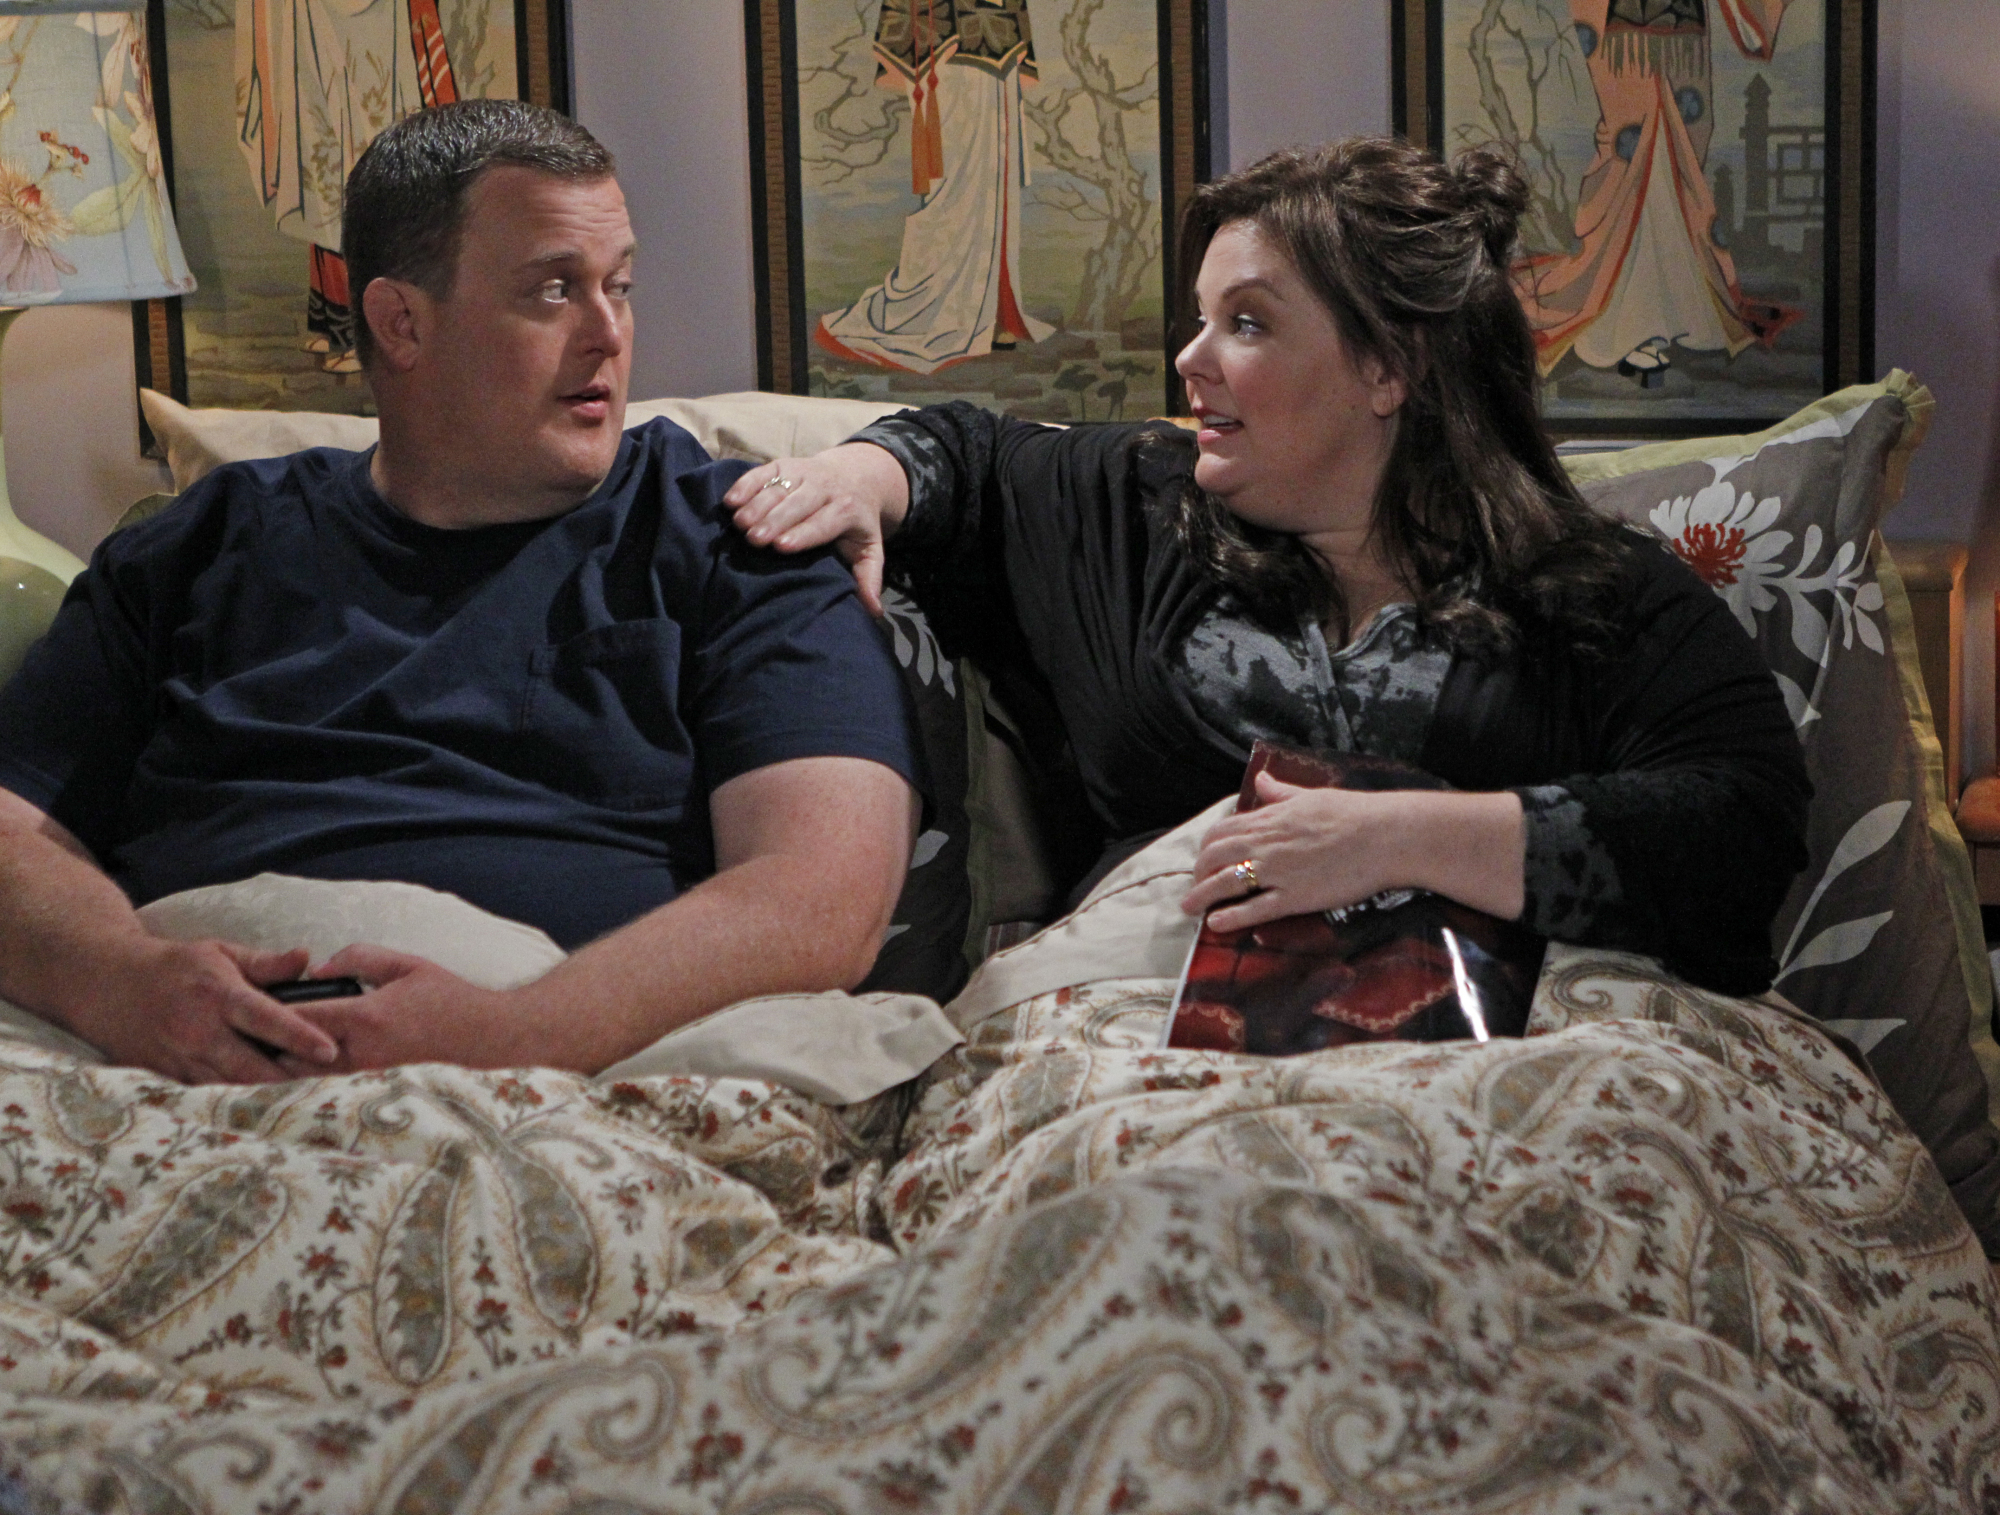 Image #: 19443535    'Mike Likes Cake' -- Mike (Billy Gardell, left) Molly (Melissa McCarthy, right) have a private chat in b